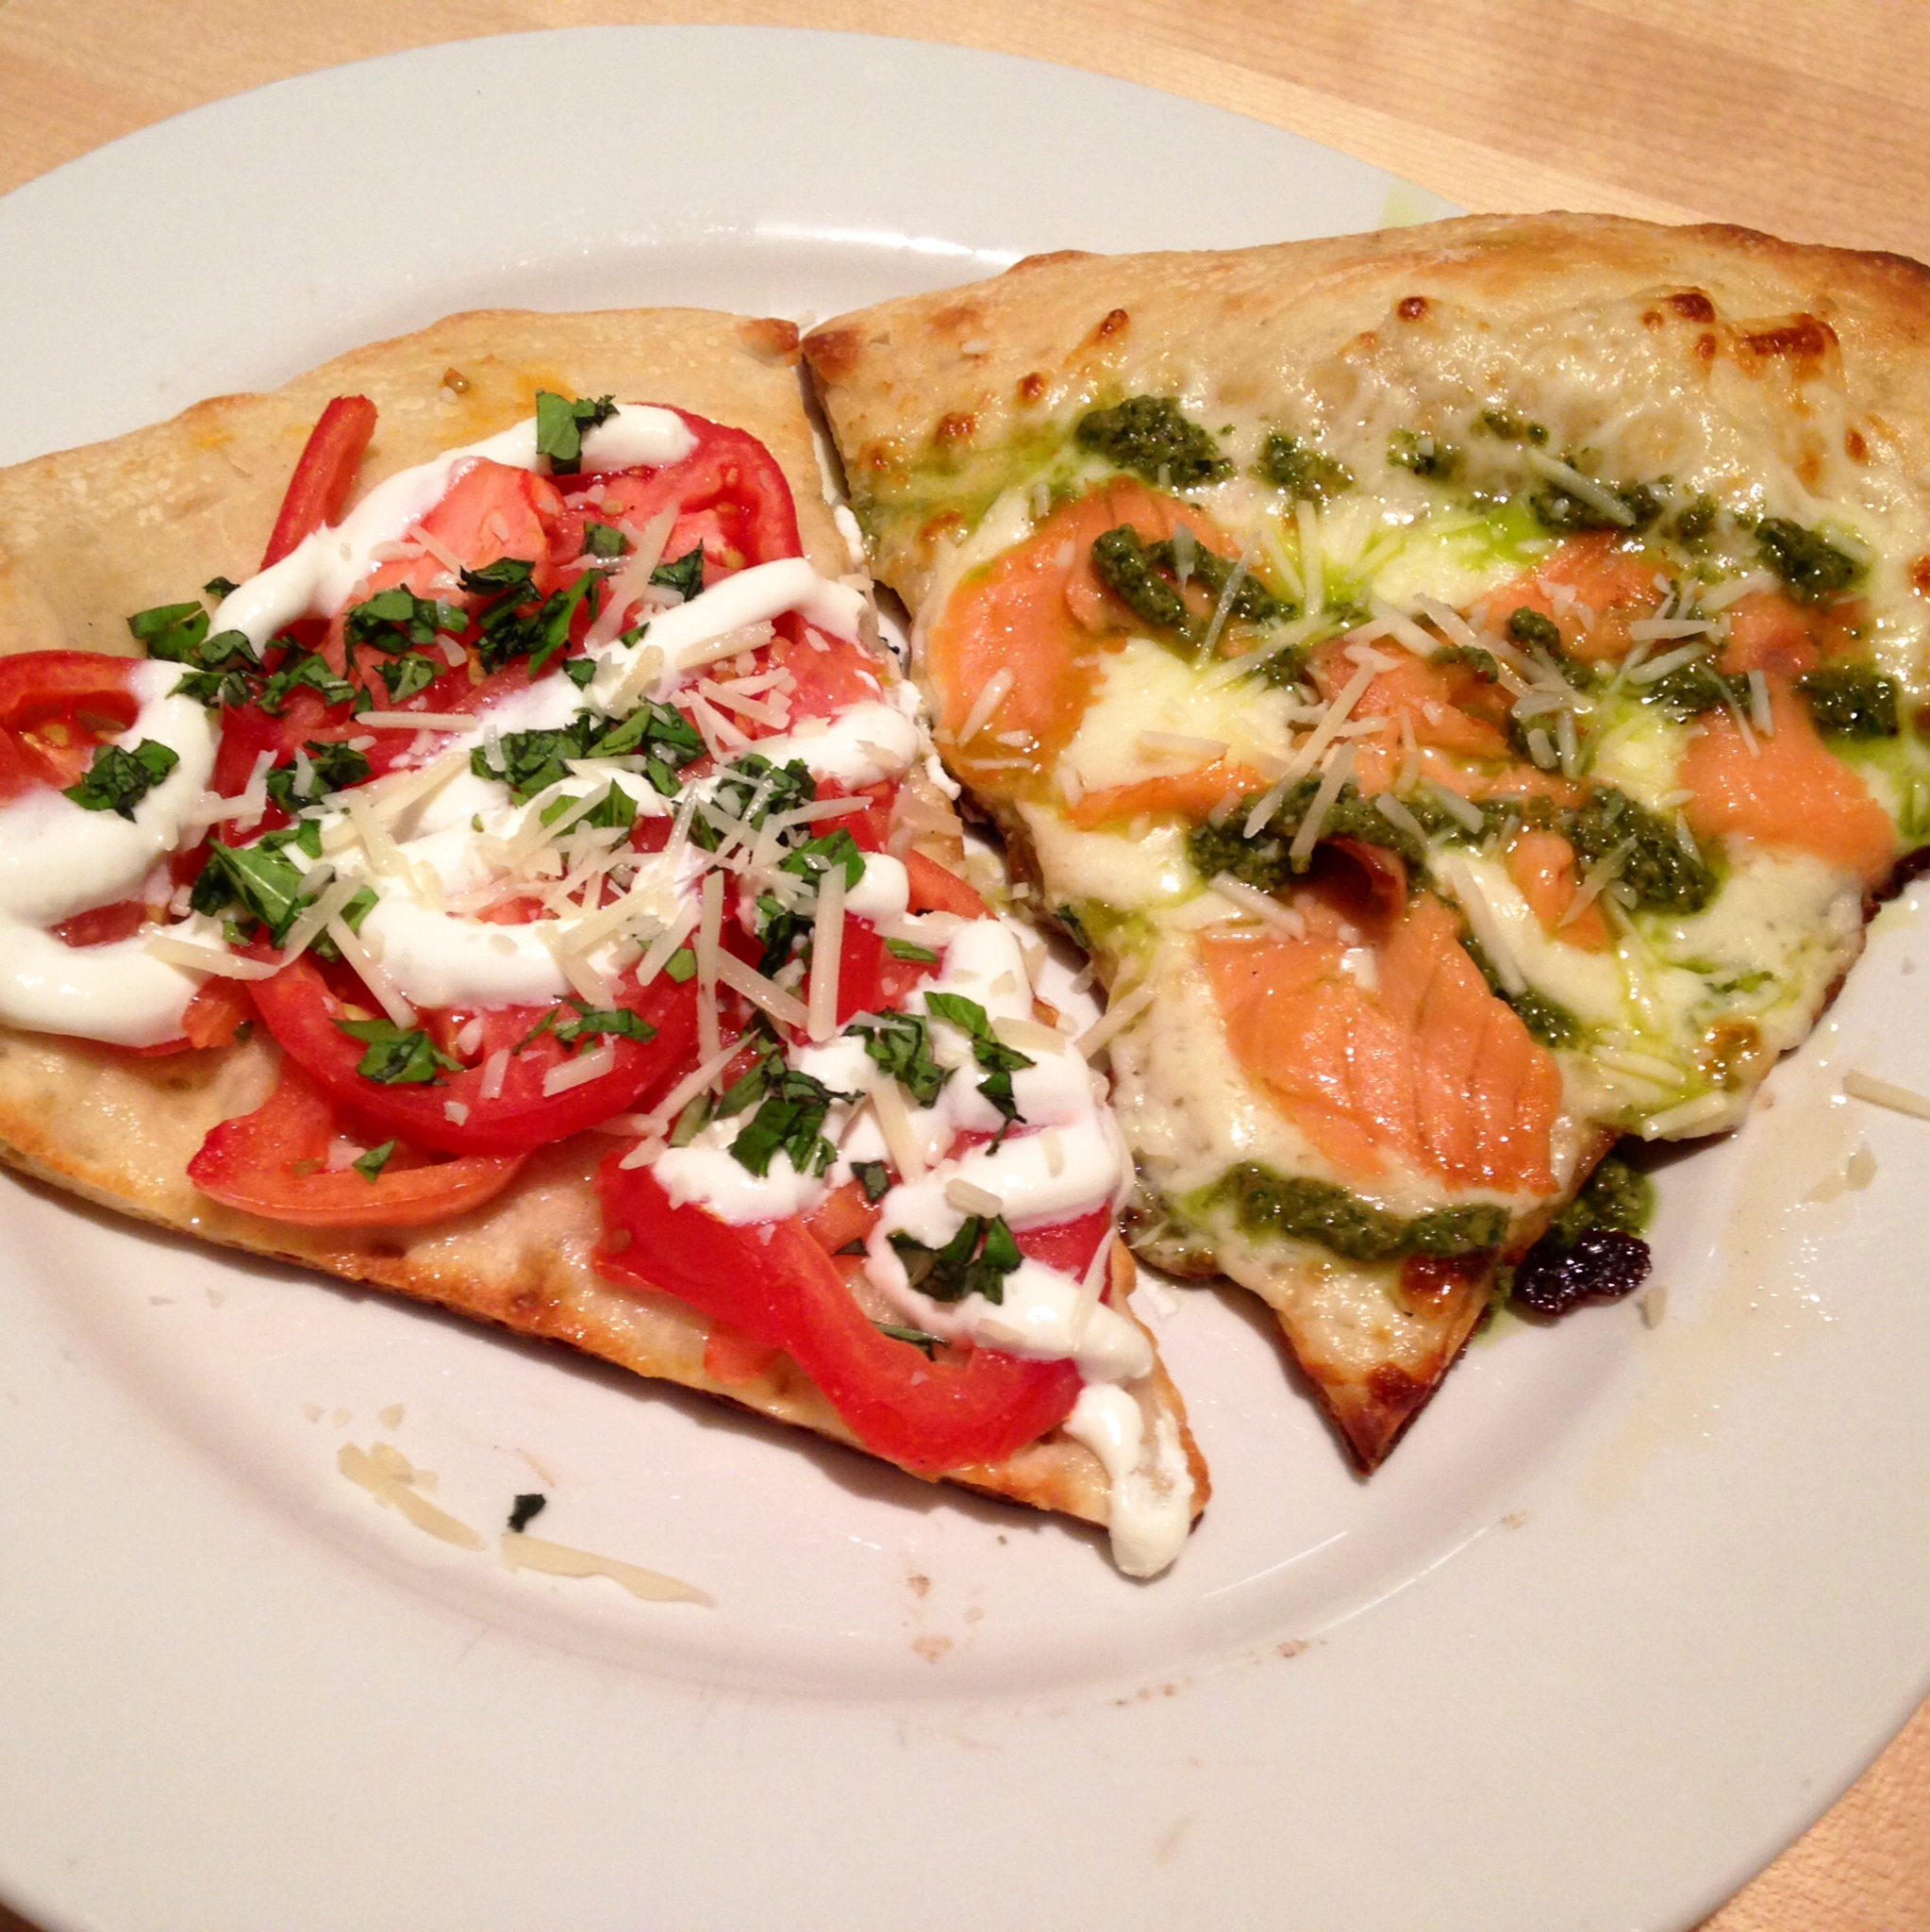 My two slices -  On the left, goat cheese white pizza with Roma tomatoes and basil. On the right - Smoked salmon white pizza with pesto. They both pieces were so flavorful! Loved them!